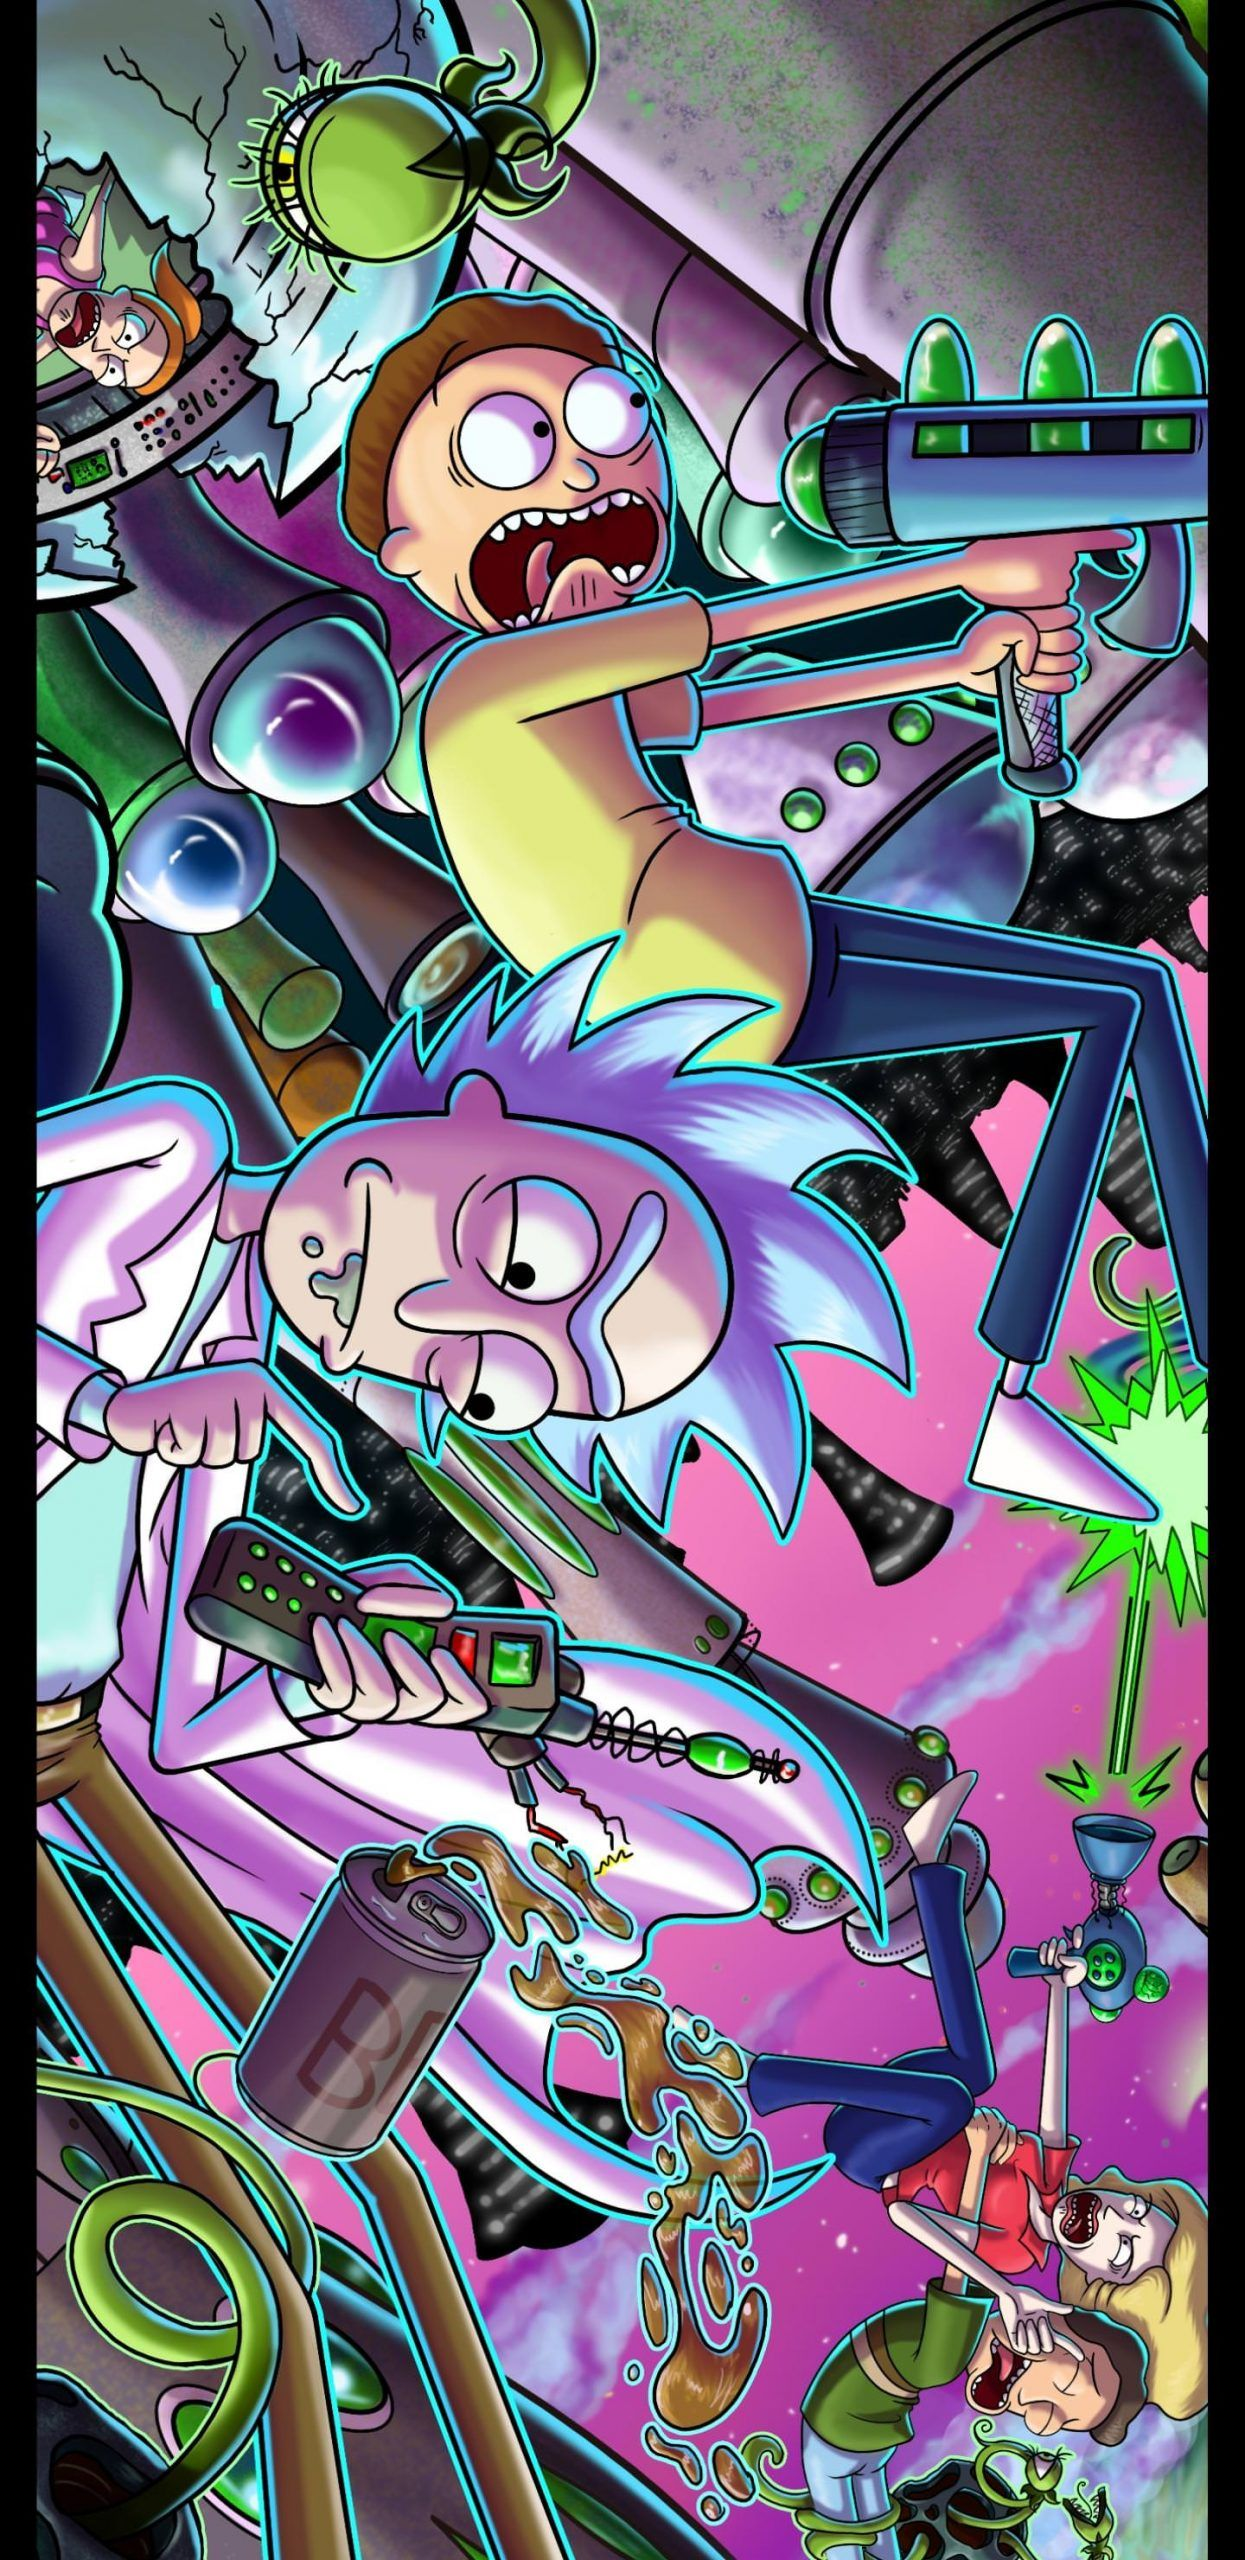 Rick And Morty Poster Phone Wallpaper Album On Imgur